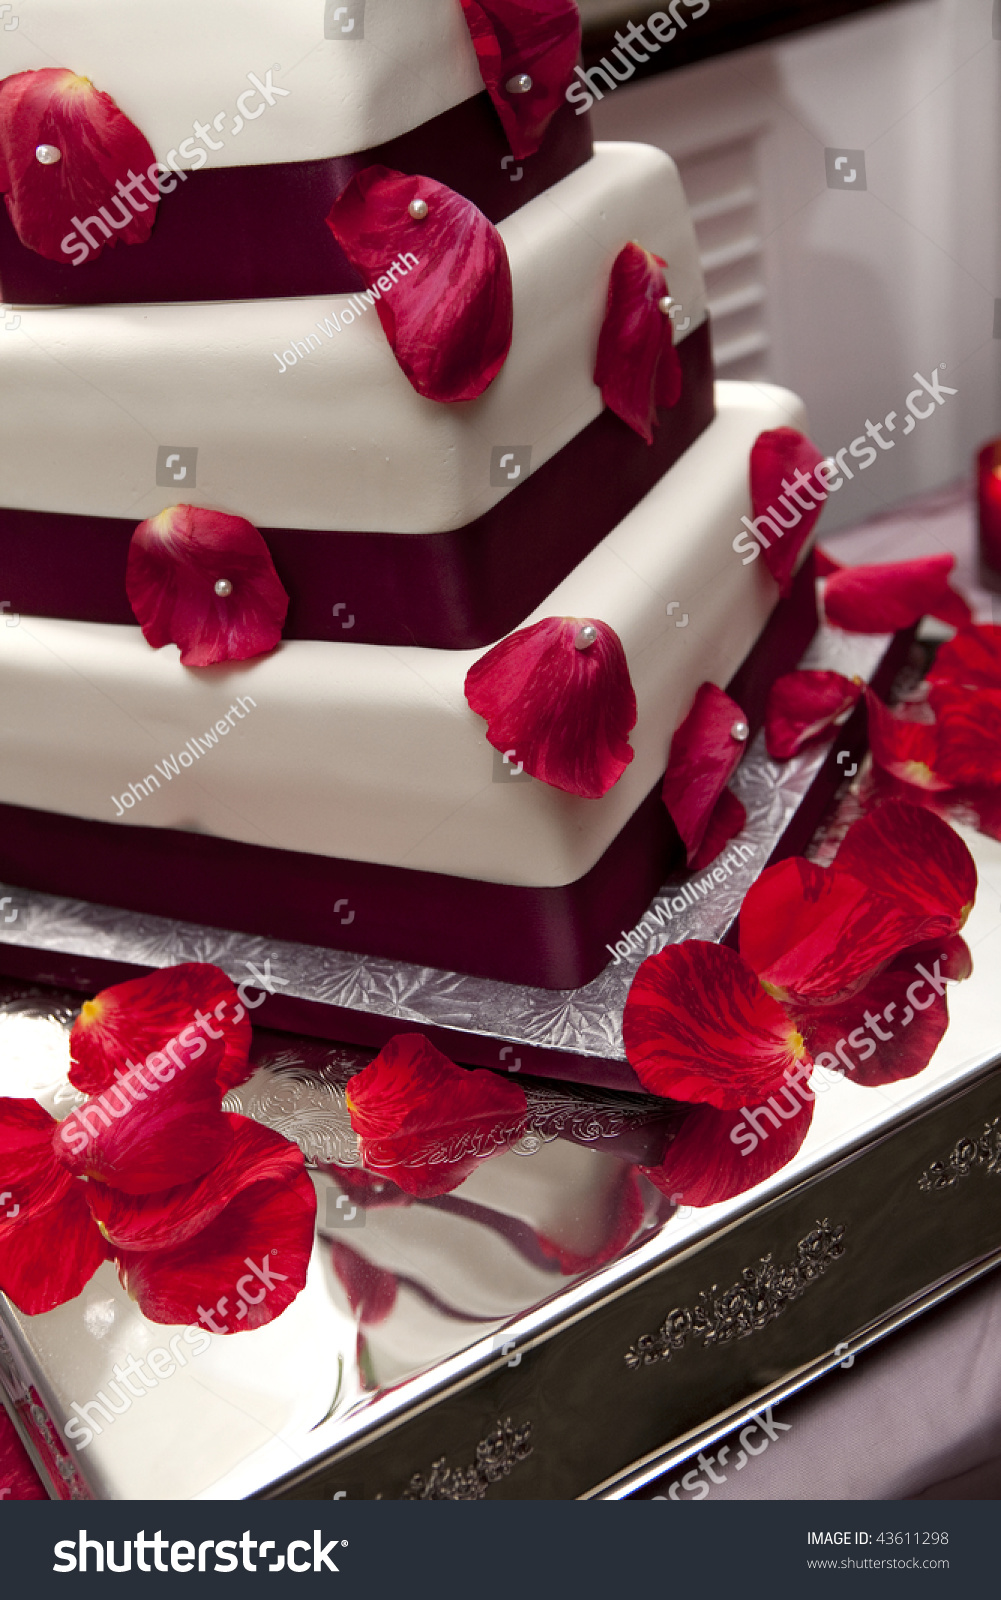 detail shot of wedding cake with roses stock photo 43611298